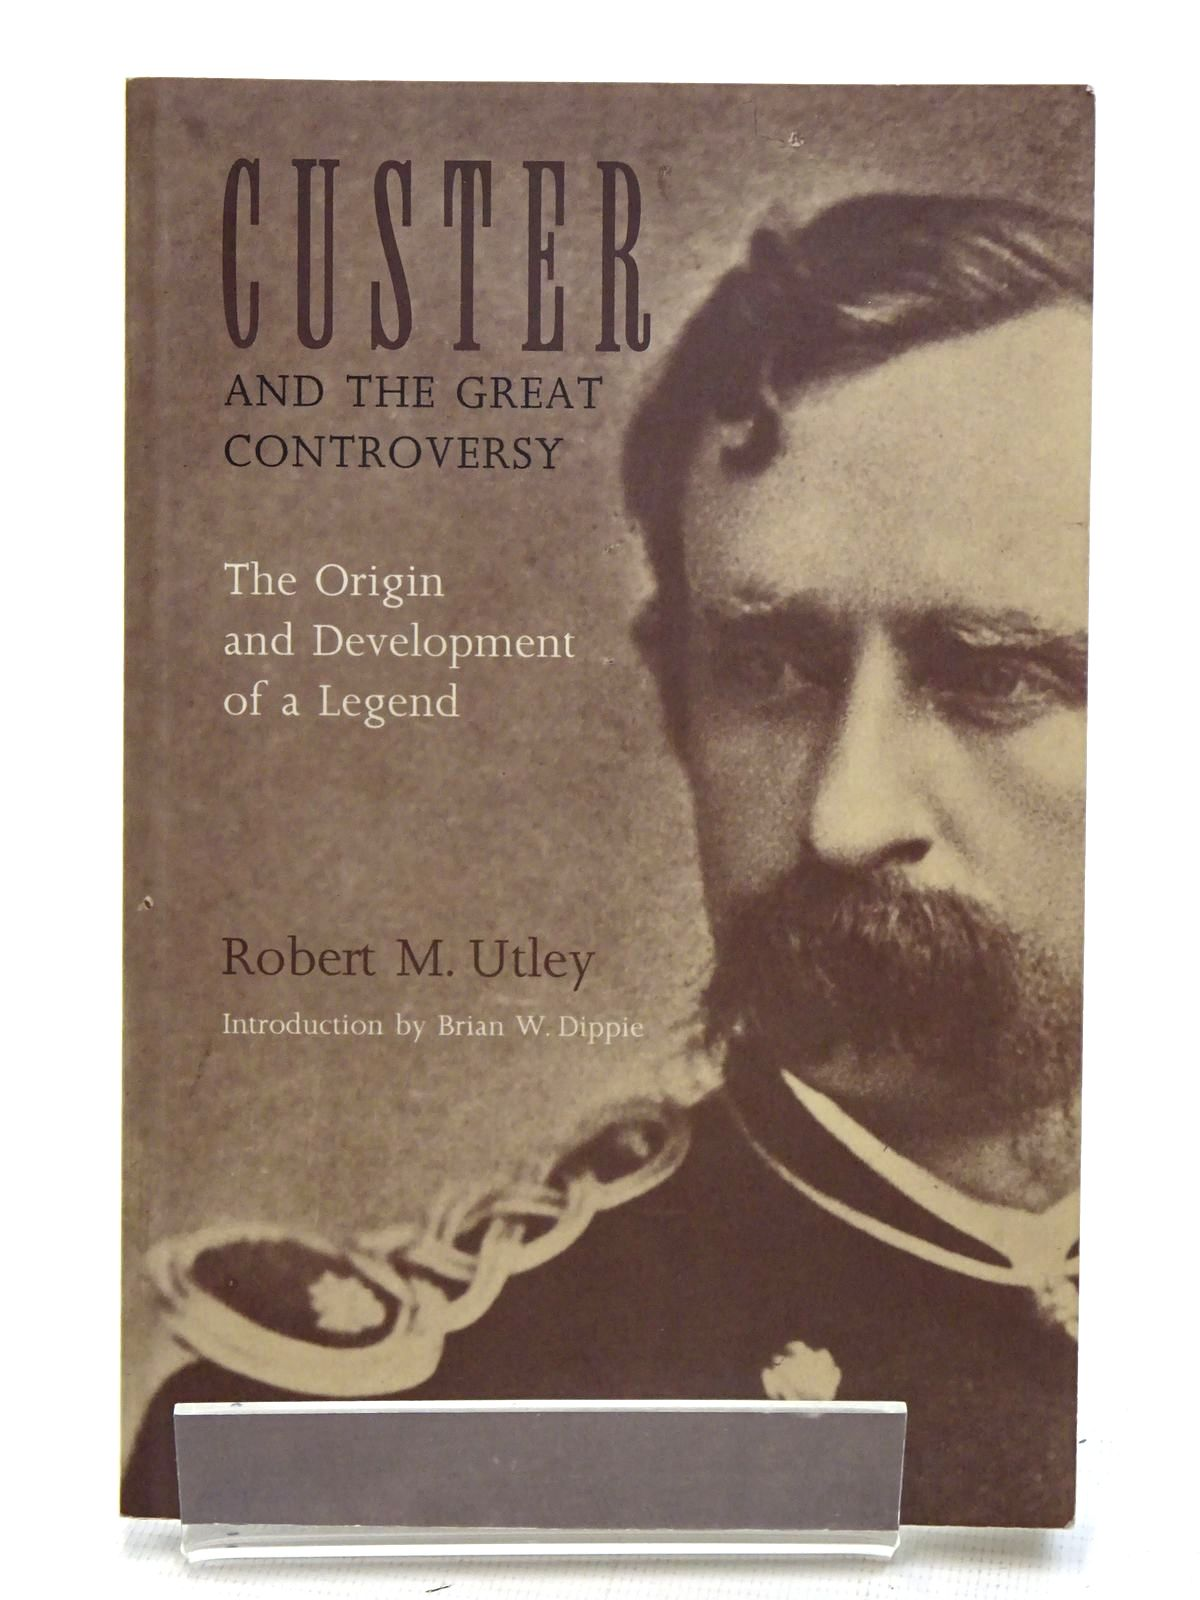 Photo of CUSTER AND THE GREAT CONTROVERSY written by Utley, Robert M. published by Bison Books (STOCK CODE: 1816278)  for sale by Stella & Rose's Books